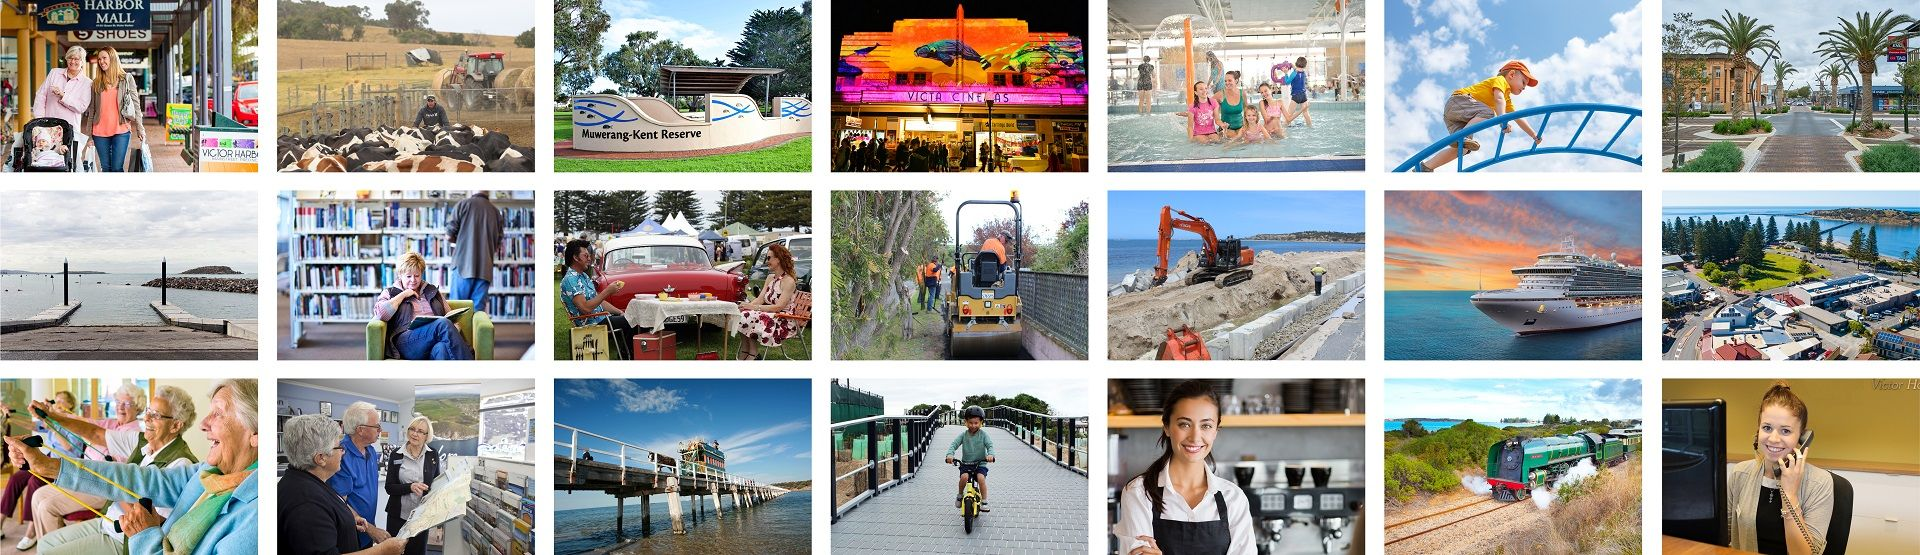 Have your say about Victor Harbor's future